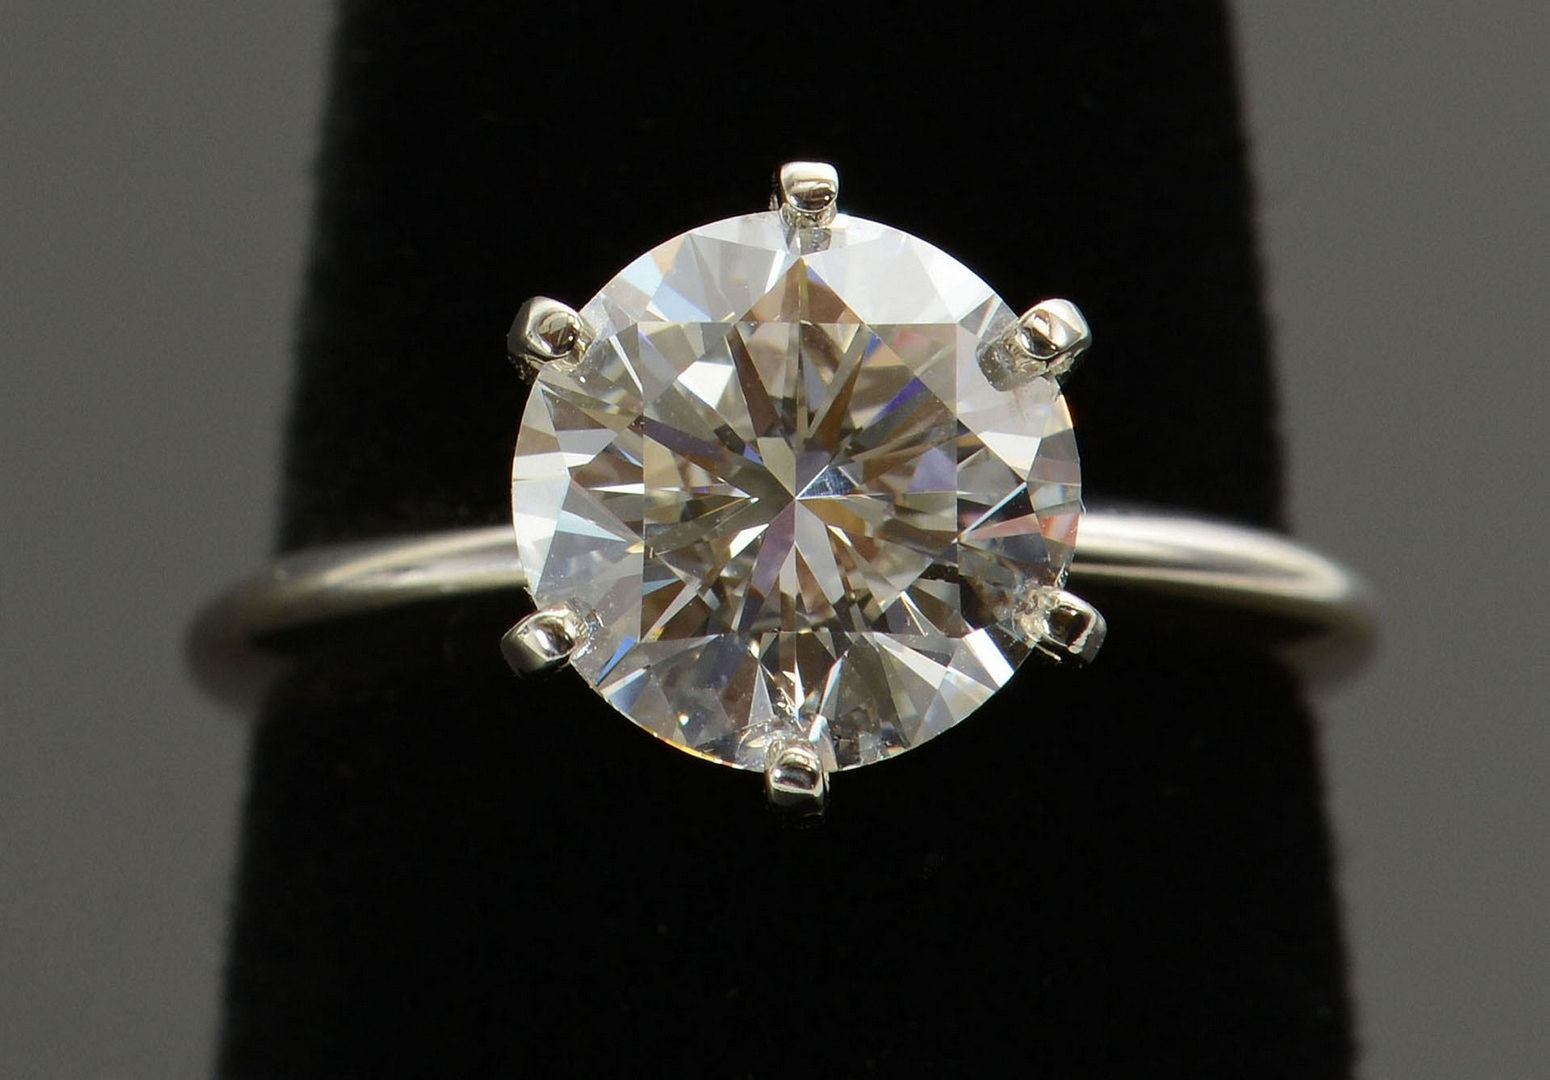 Lot 57: 3.04 ct Round Brilliant Diamond Ring with GIA